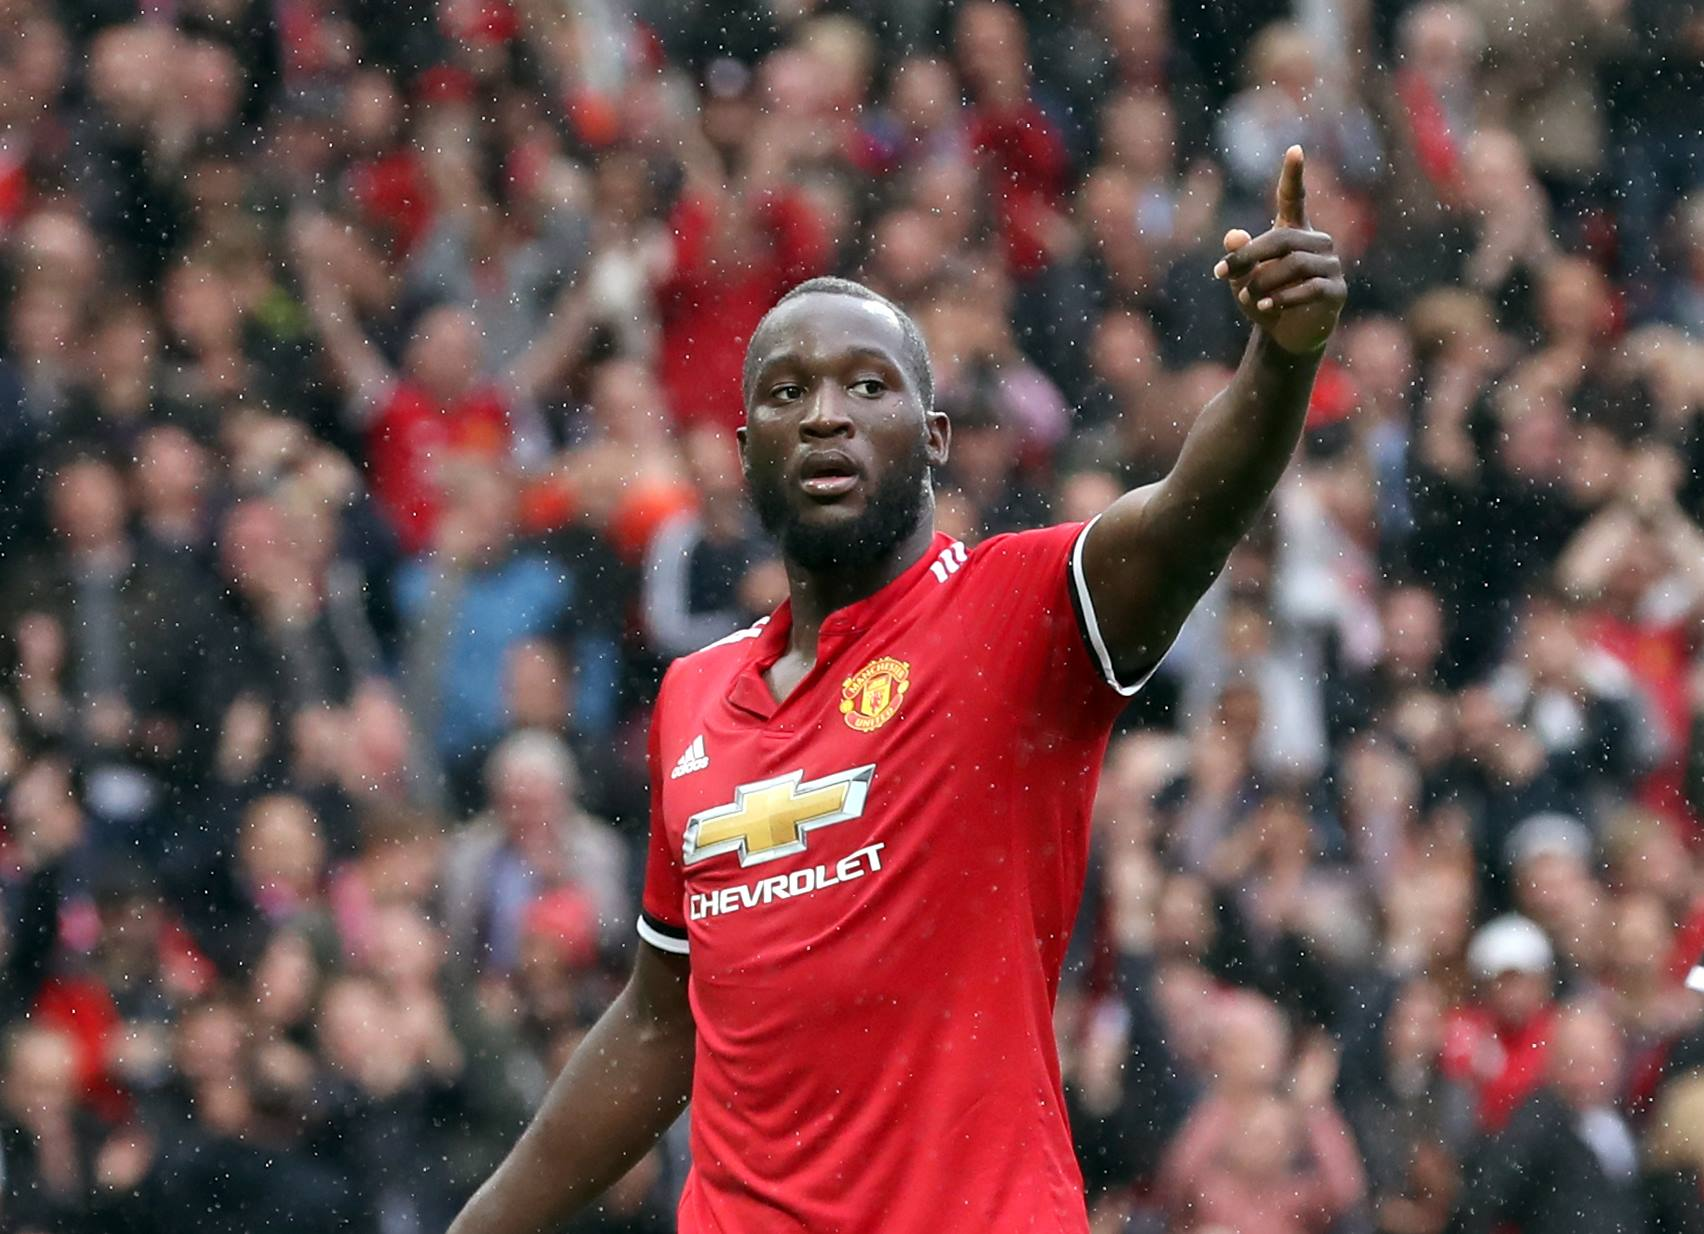 Roy Keane: Romelu Lukaku is a 'bargain' at £75 million